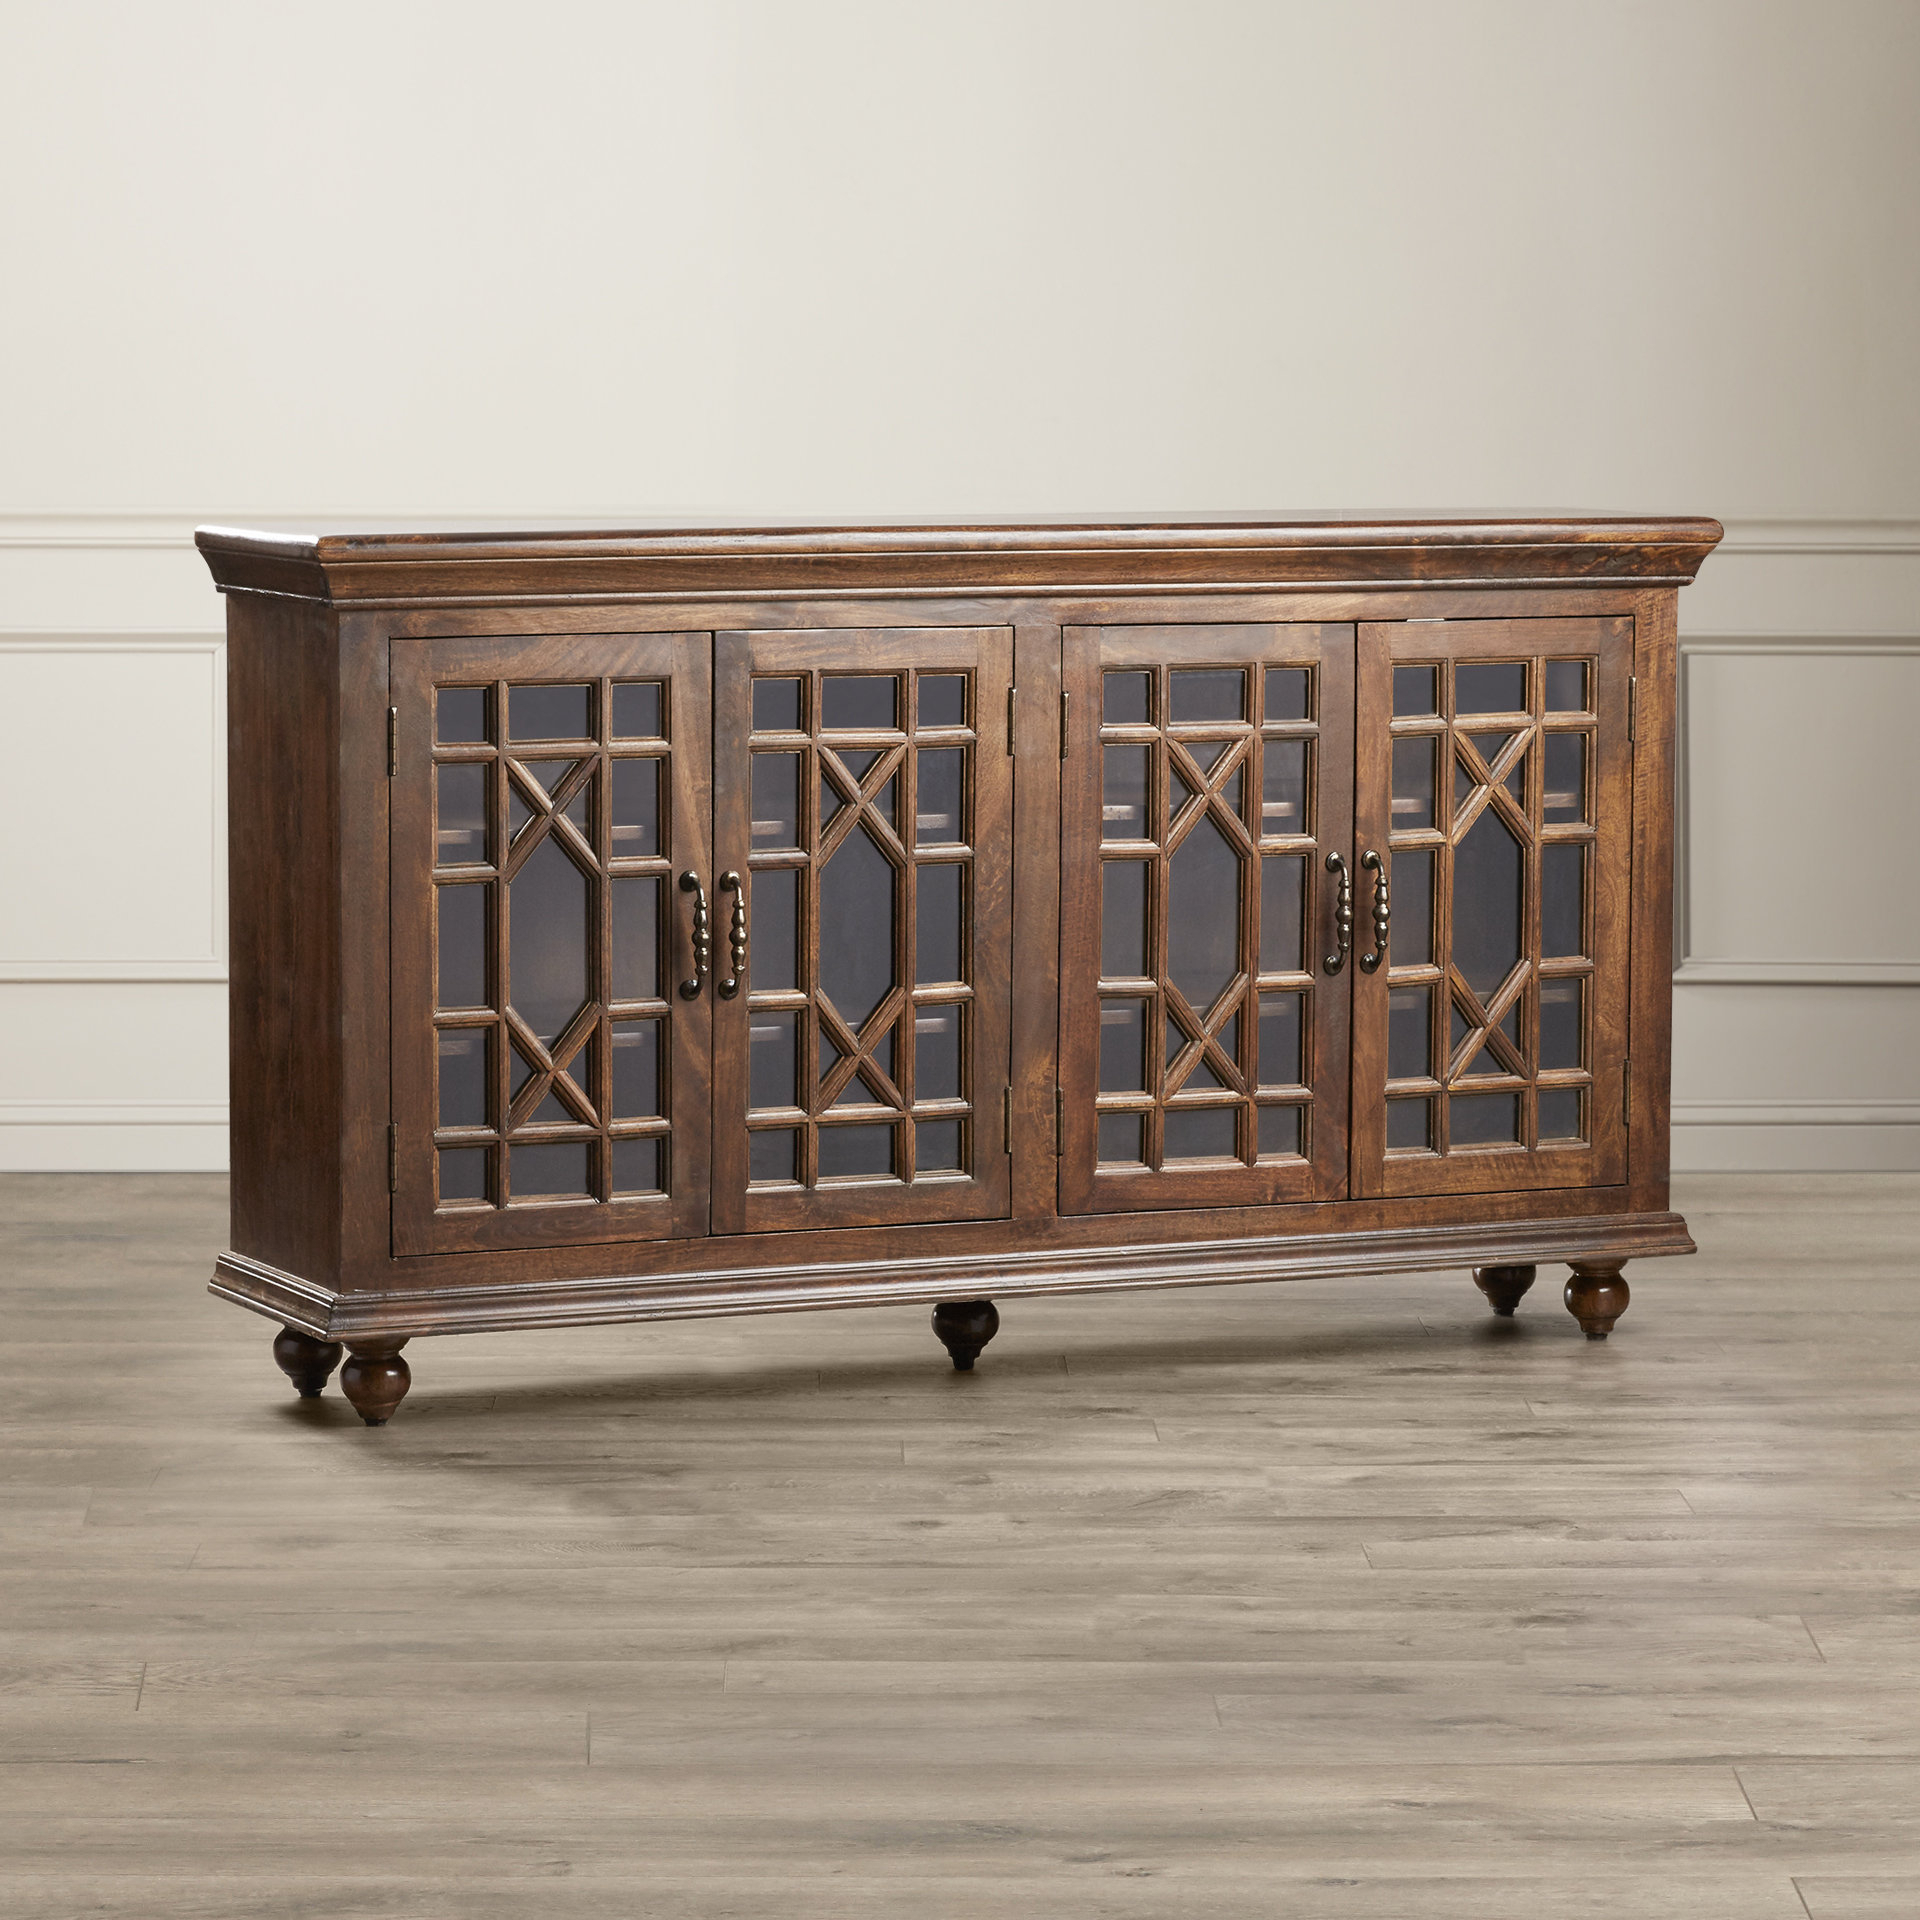 Popular Farmhouse & Rustic Darby Home Co Sideboards & Buffets Within Phyllis Sideboards (Gallery 17 of 20)